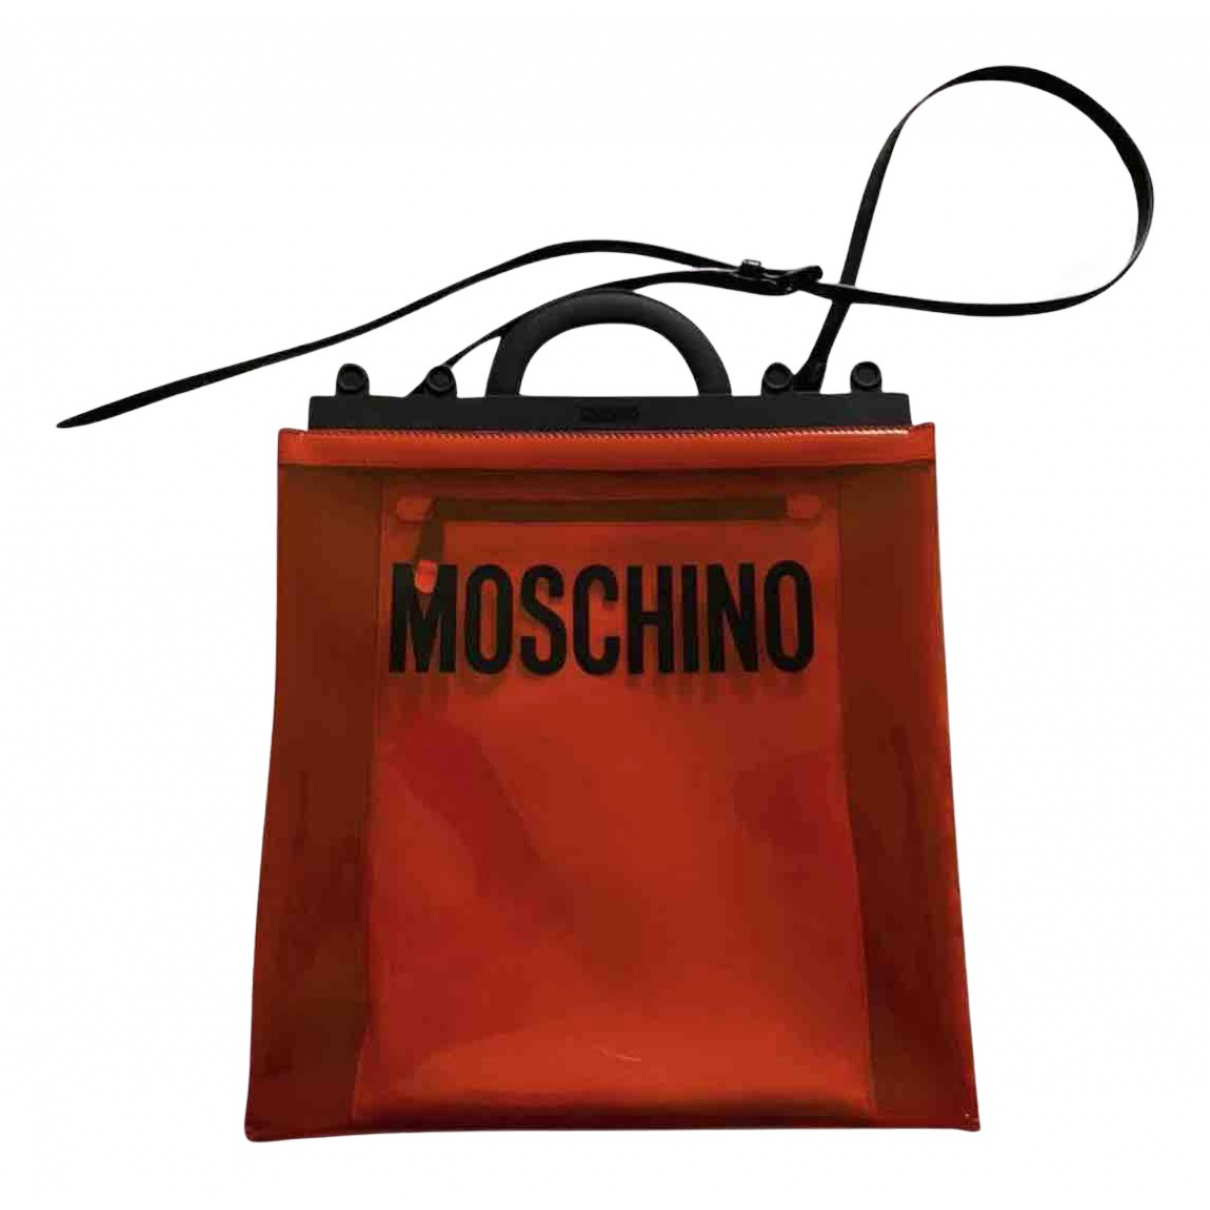 Moschino - Sac a main   pour femme - orange